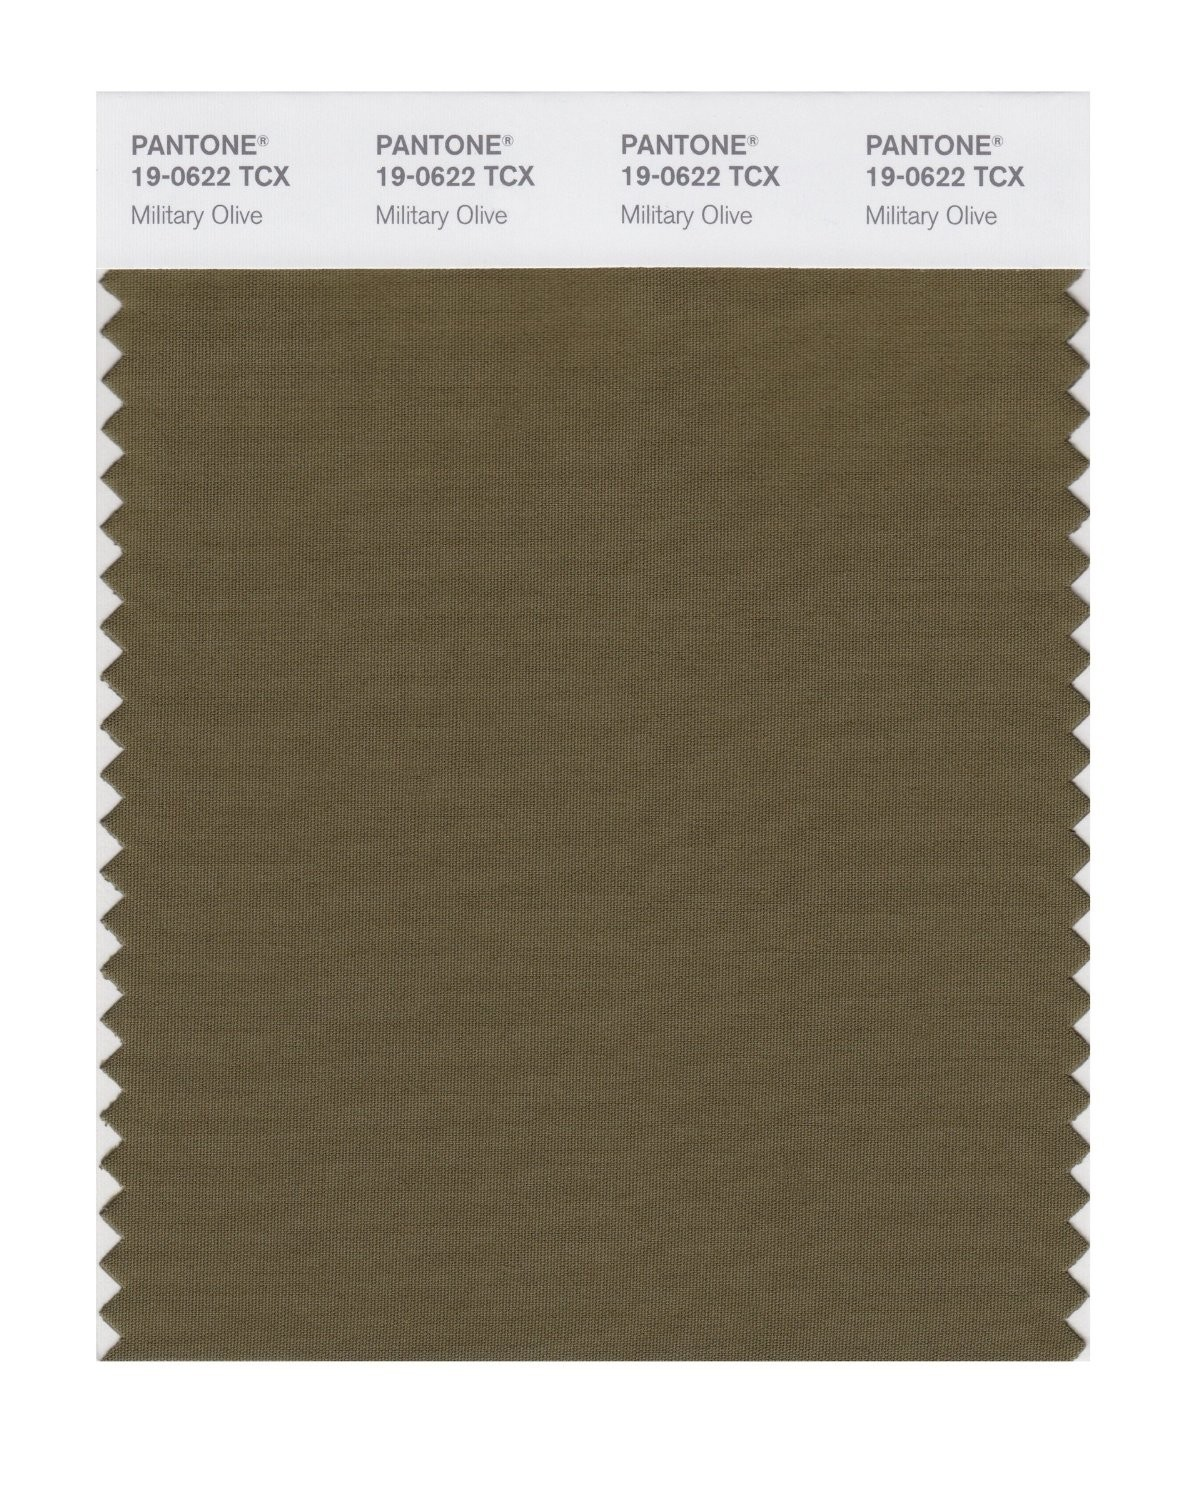 Pantone 19-0622 TCX Swatch Card Military Olive